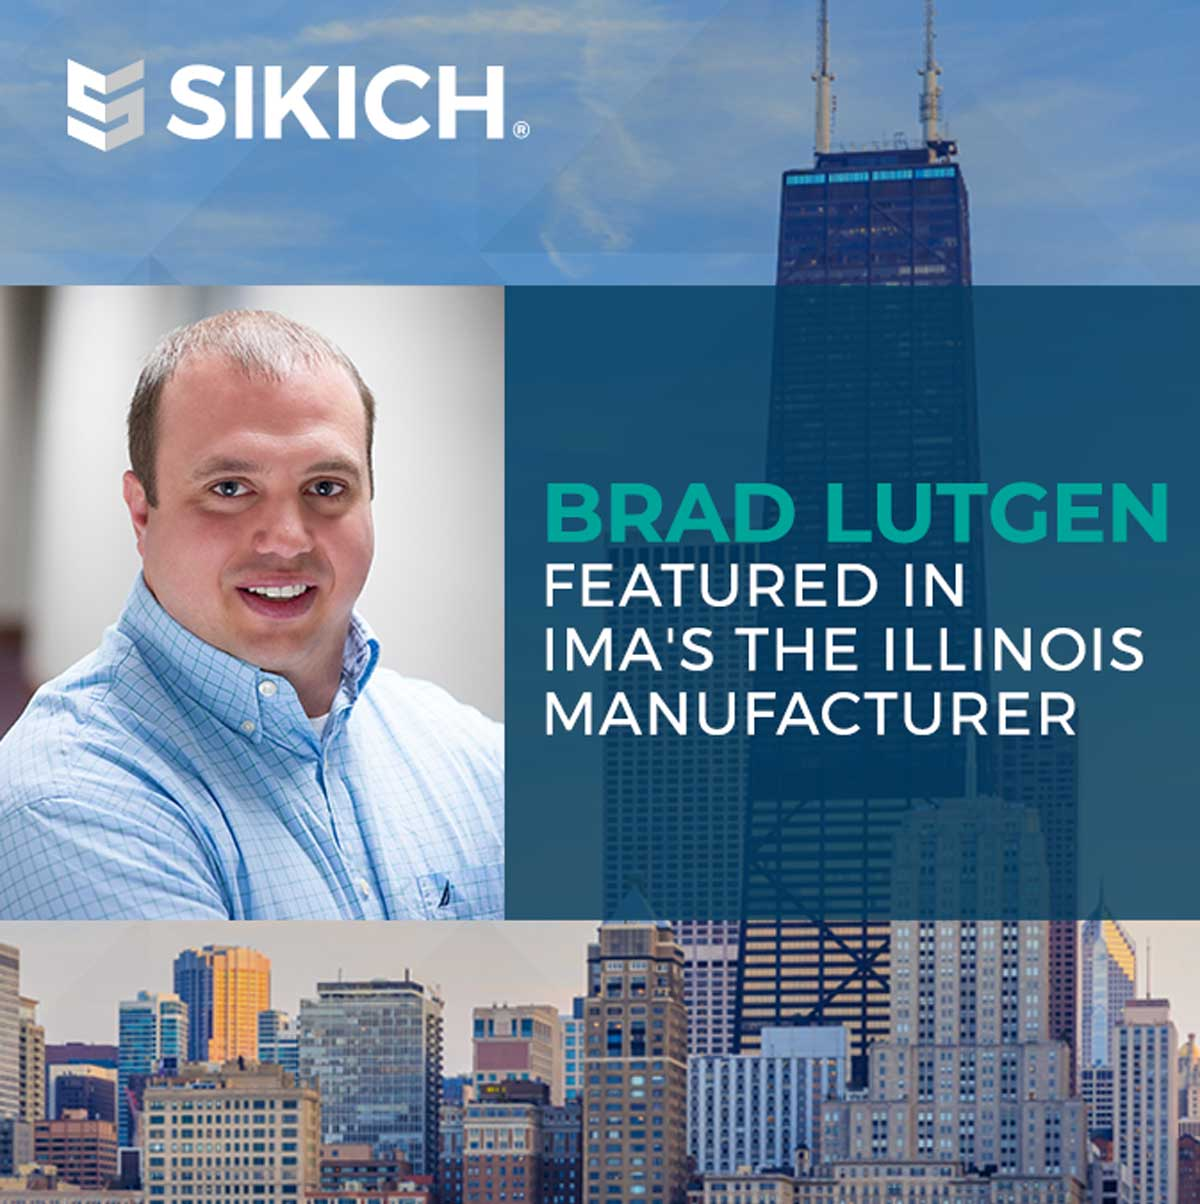 Brad-Lutgen-Featured-in-IMA's-the-Illinois-Manufacturer